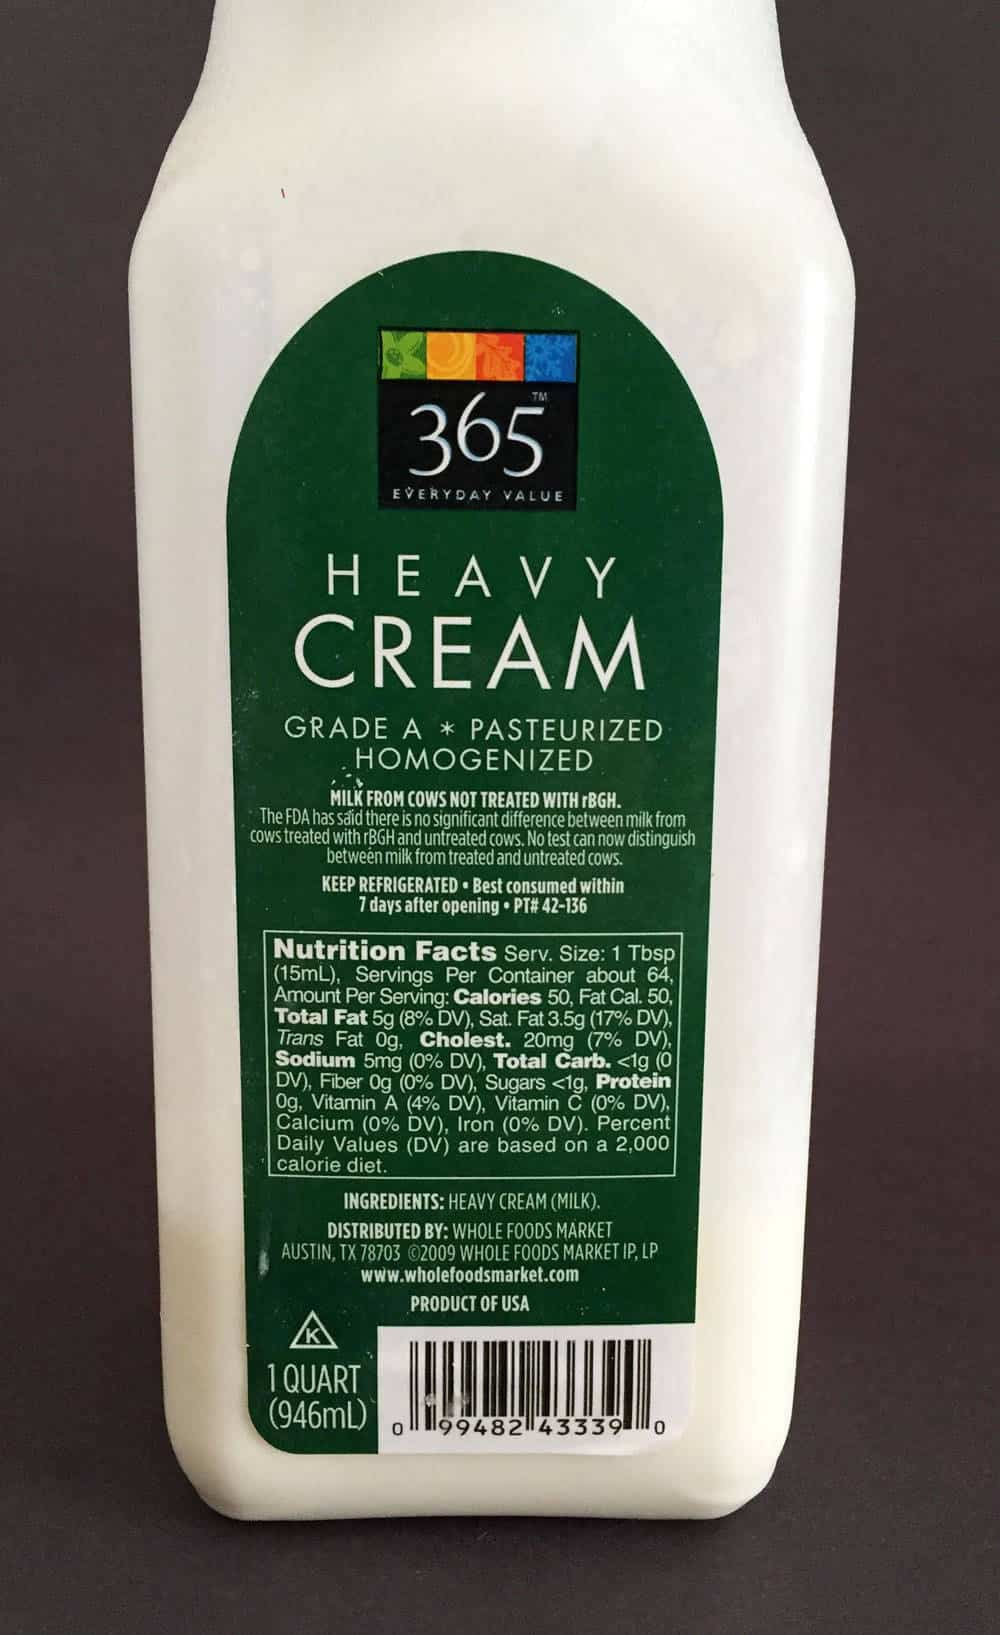 Heavy cream has no stabilizers or other additives.